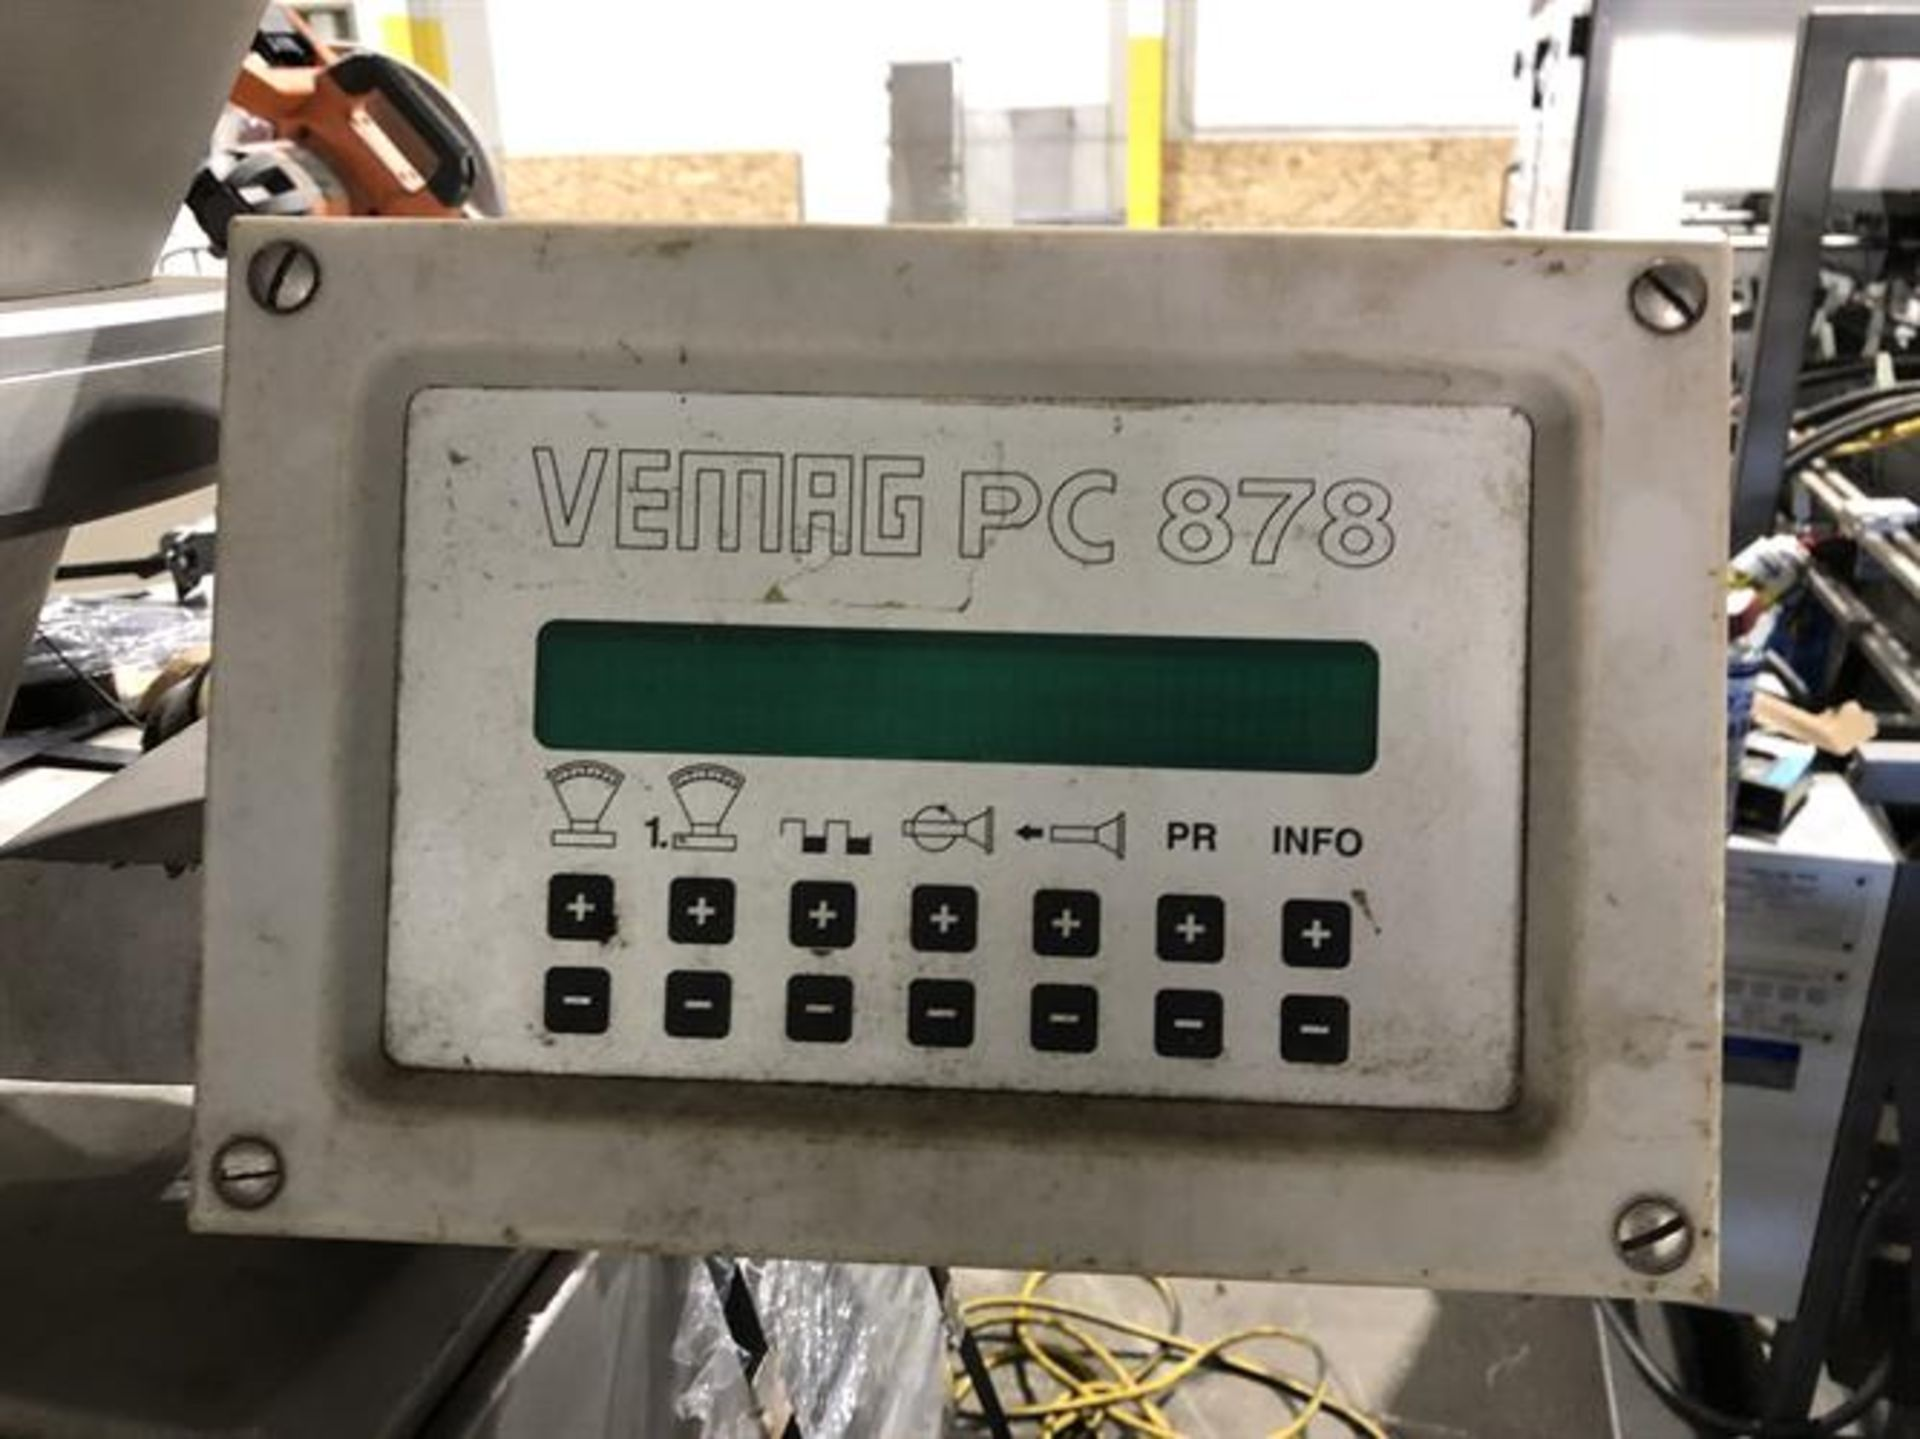 Vemag Robot 500 With PC 878 Portion Controls - Image 8 of 9